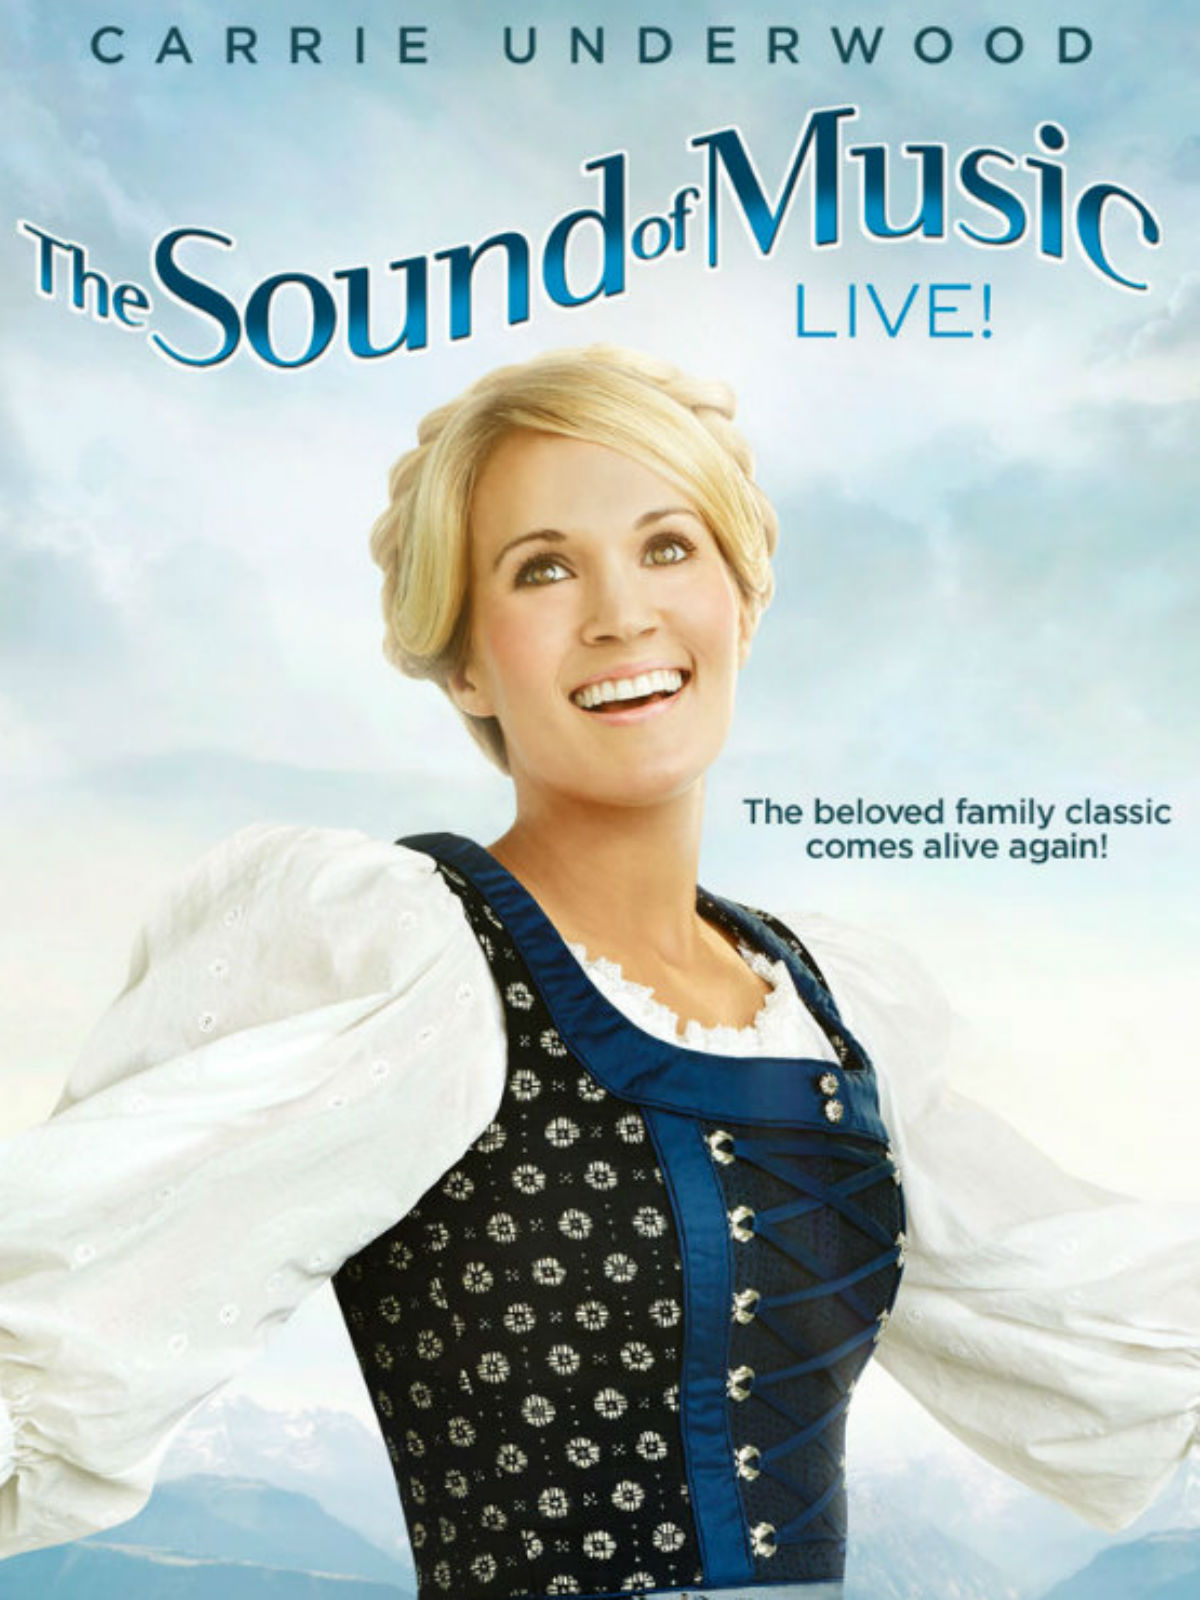 Télécharger The Sound of Music Live! (TV) HDLight 720p HD